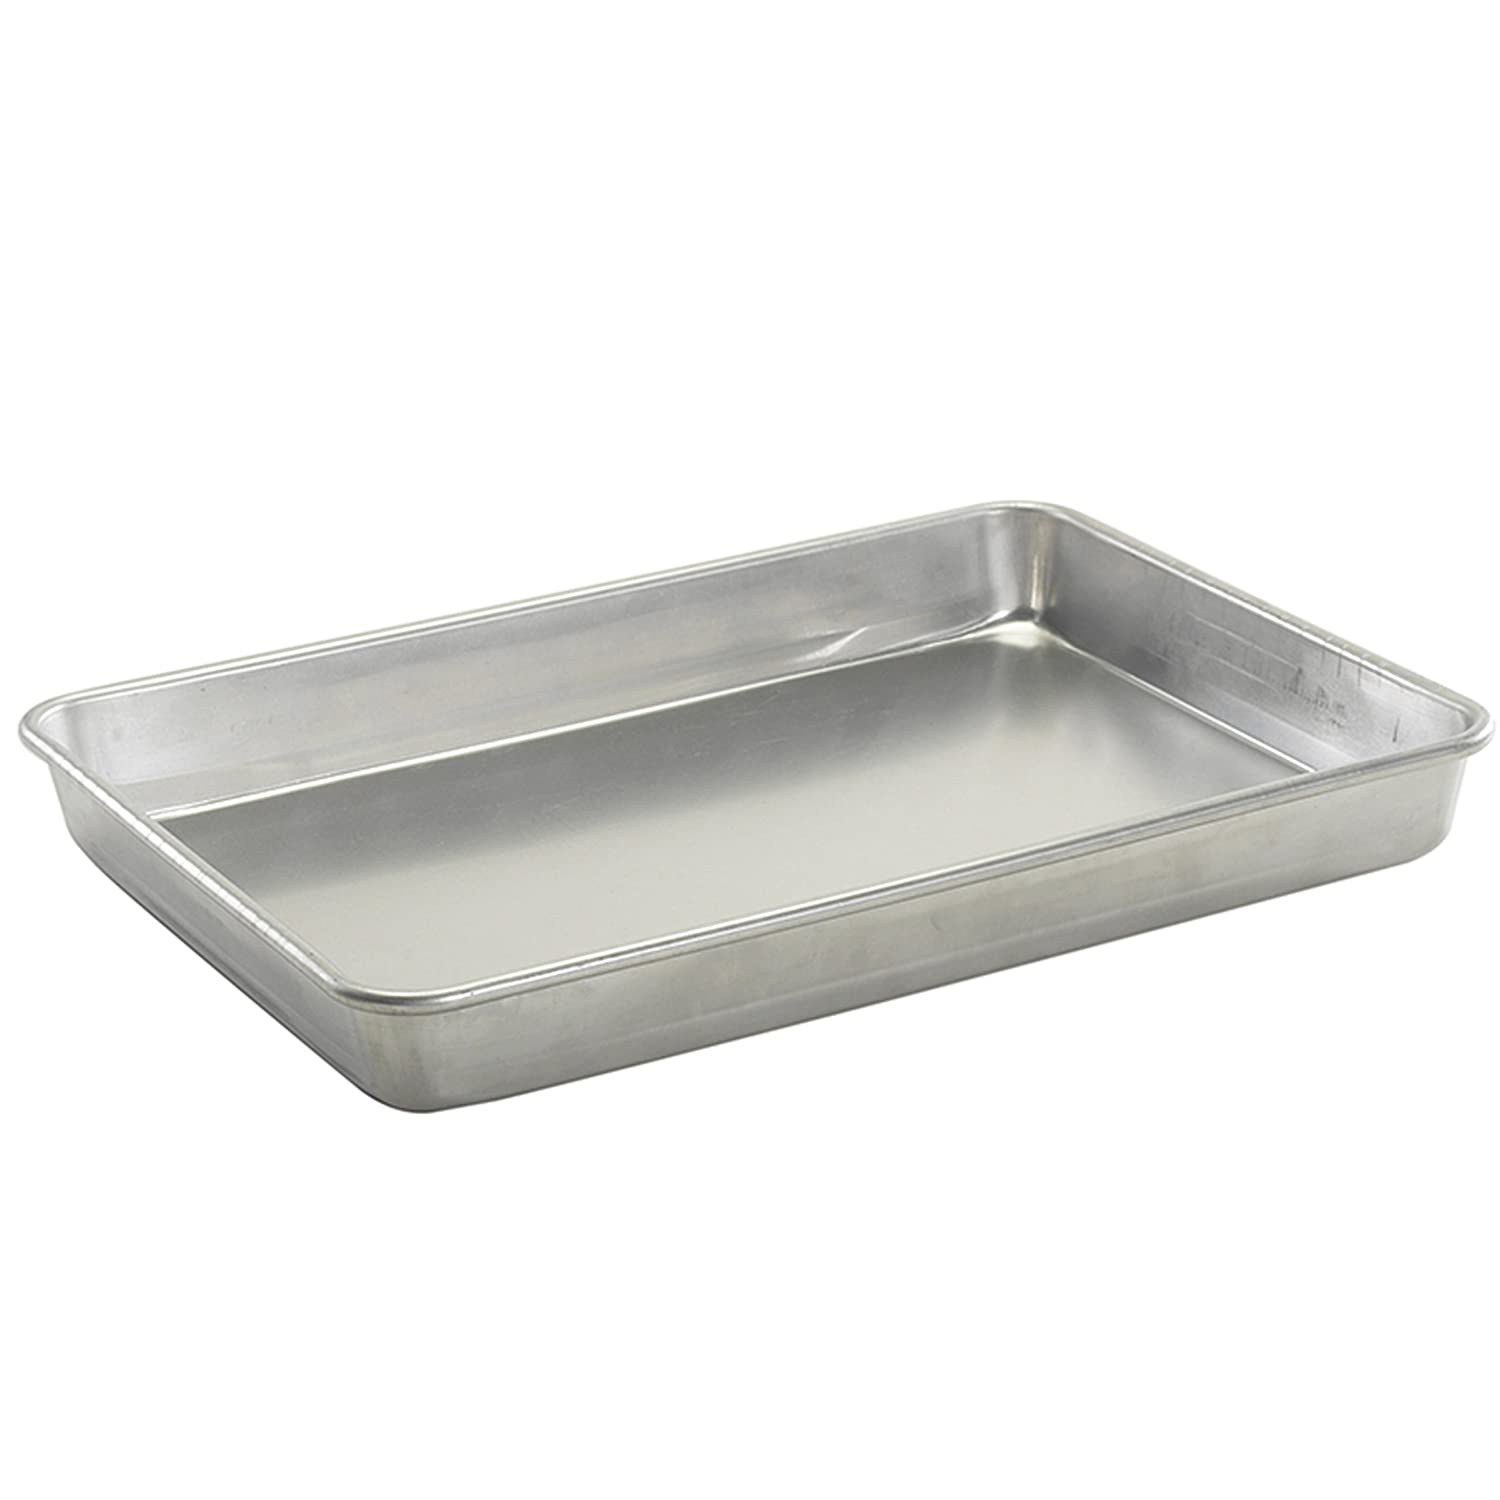 Rectangular Cake Pan Dimensions